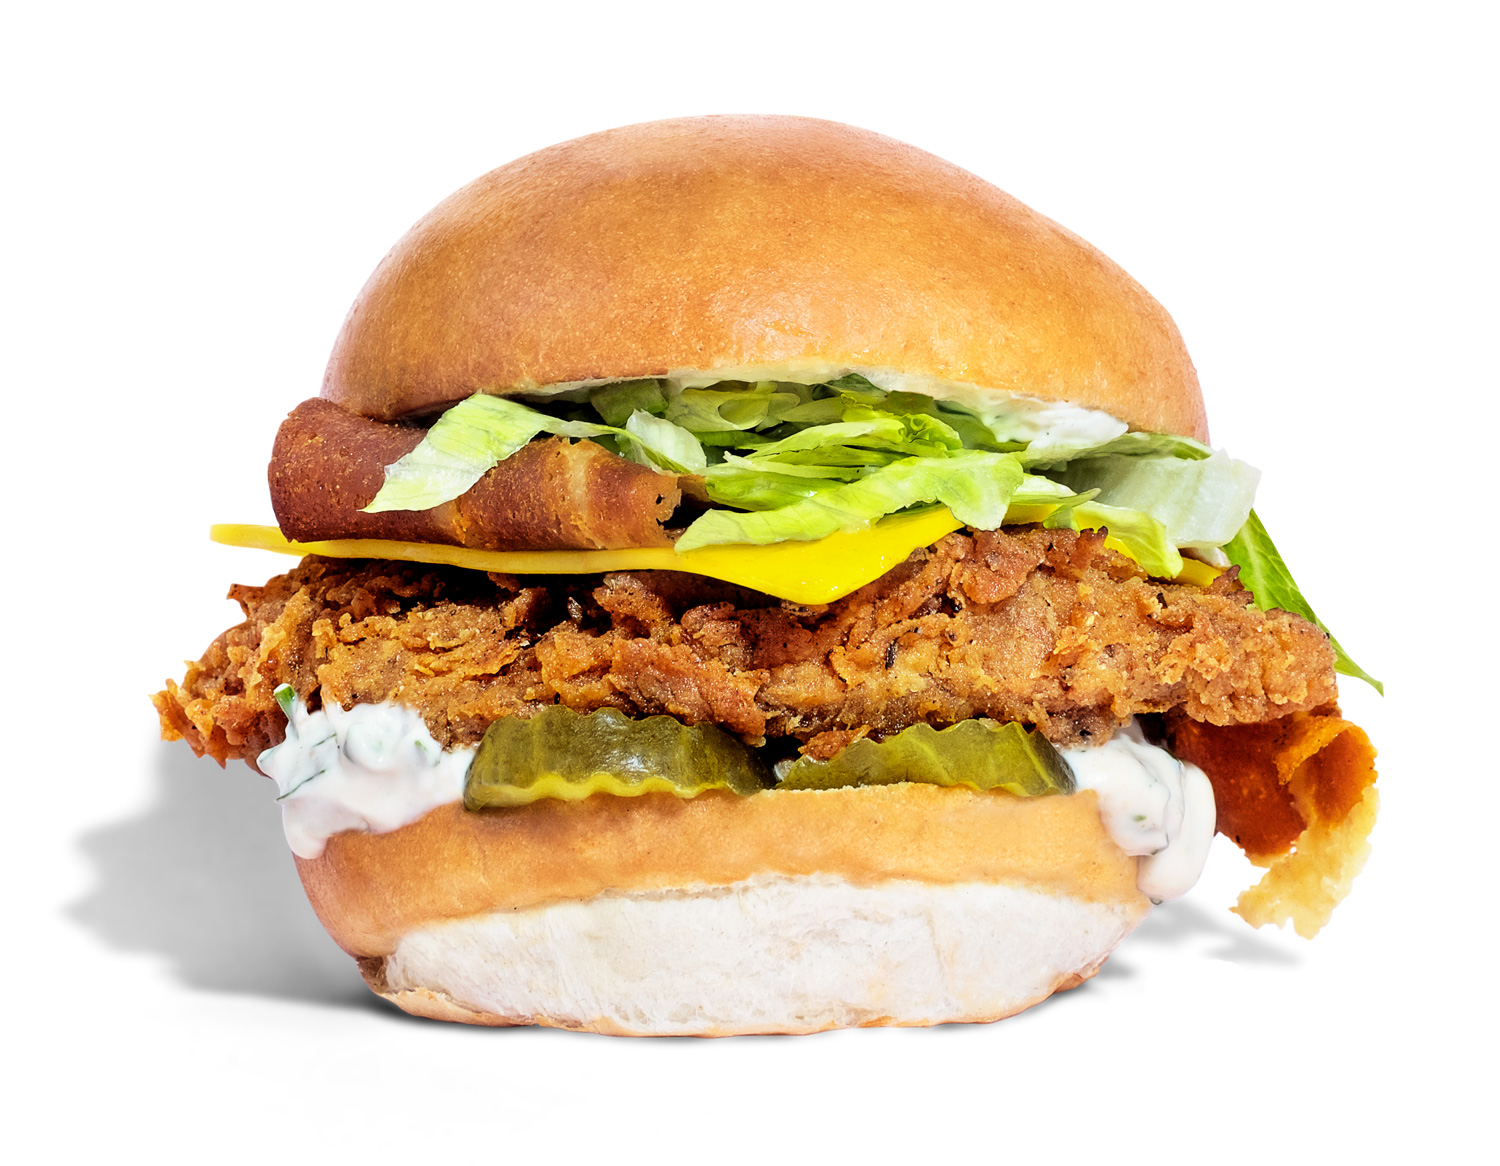 Temple Burger Chick'n Fillet, Ranch Mayo, Bacon, Cheese, Lettuce, Pickles